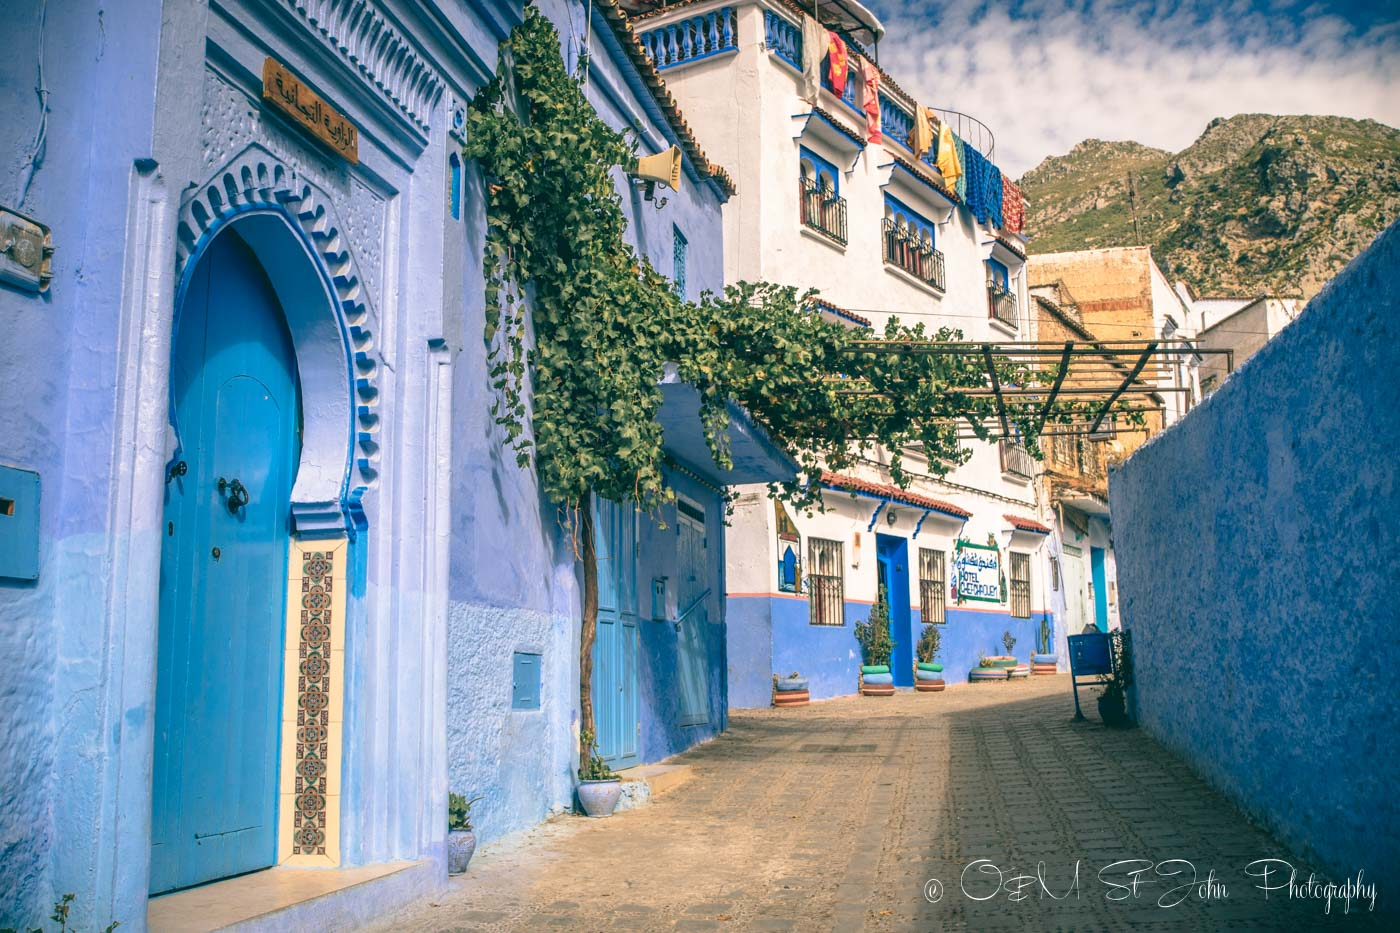 Picture perfect street in Chefchaouen, Morocco